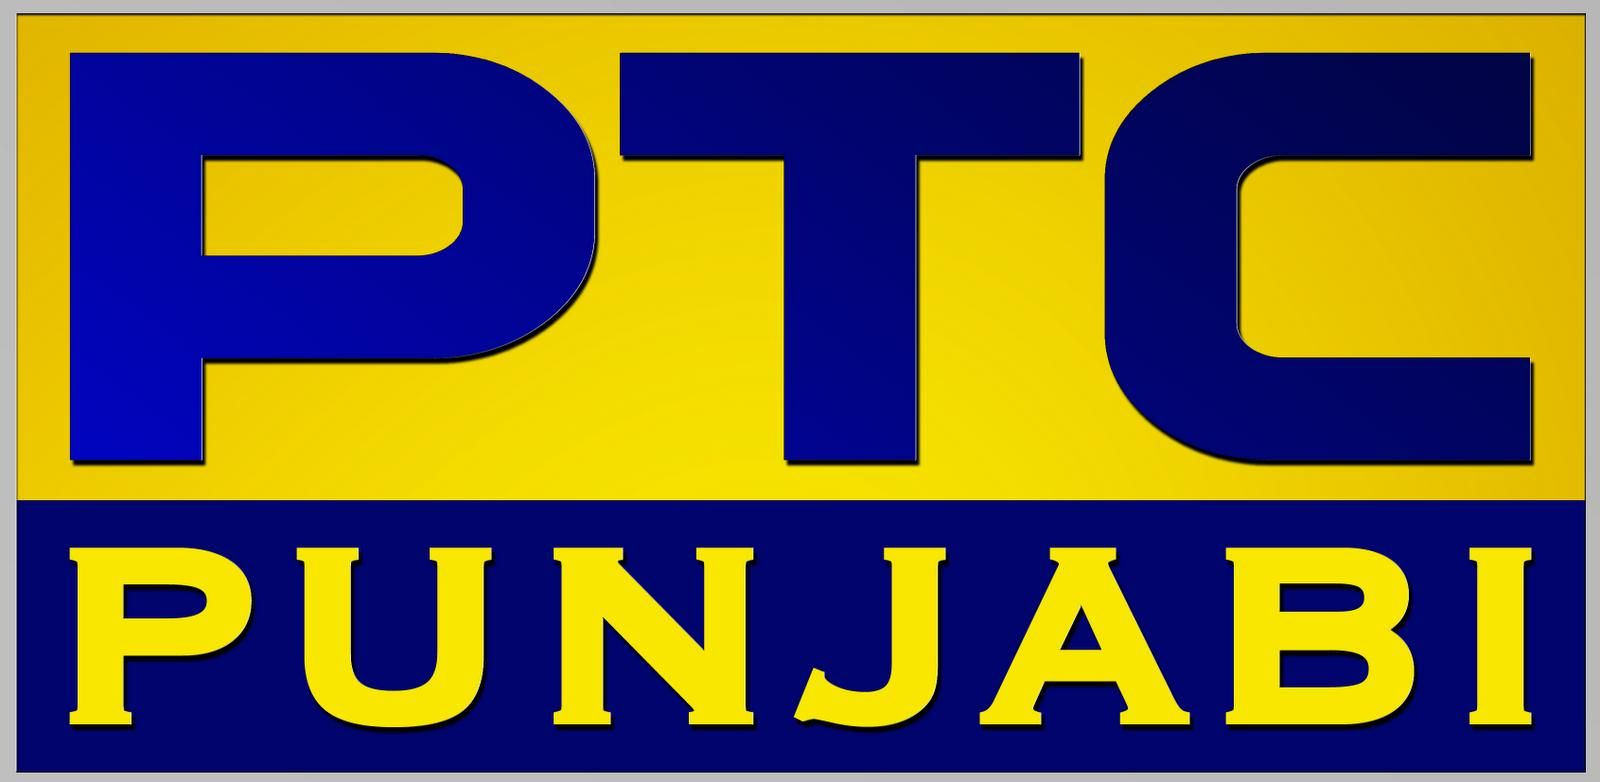 Pin on TV channels, PTC Punjabi is World's number 1 Punjabi